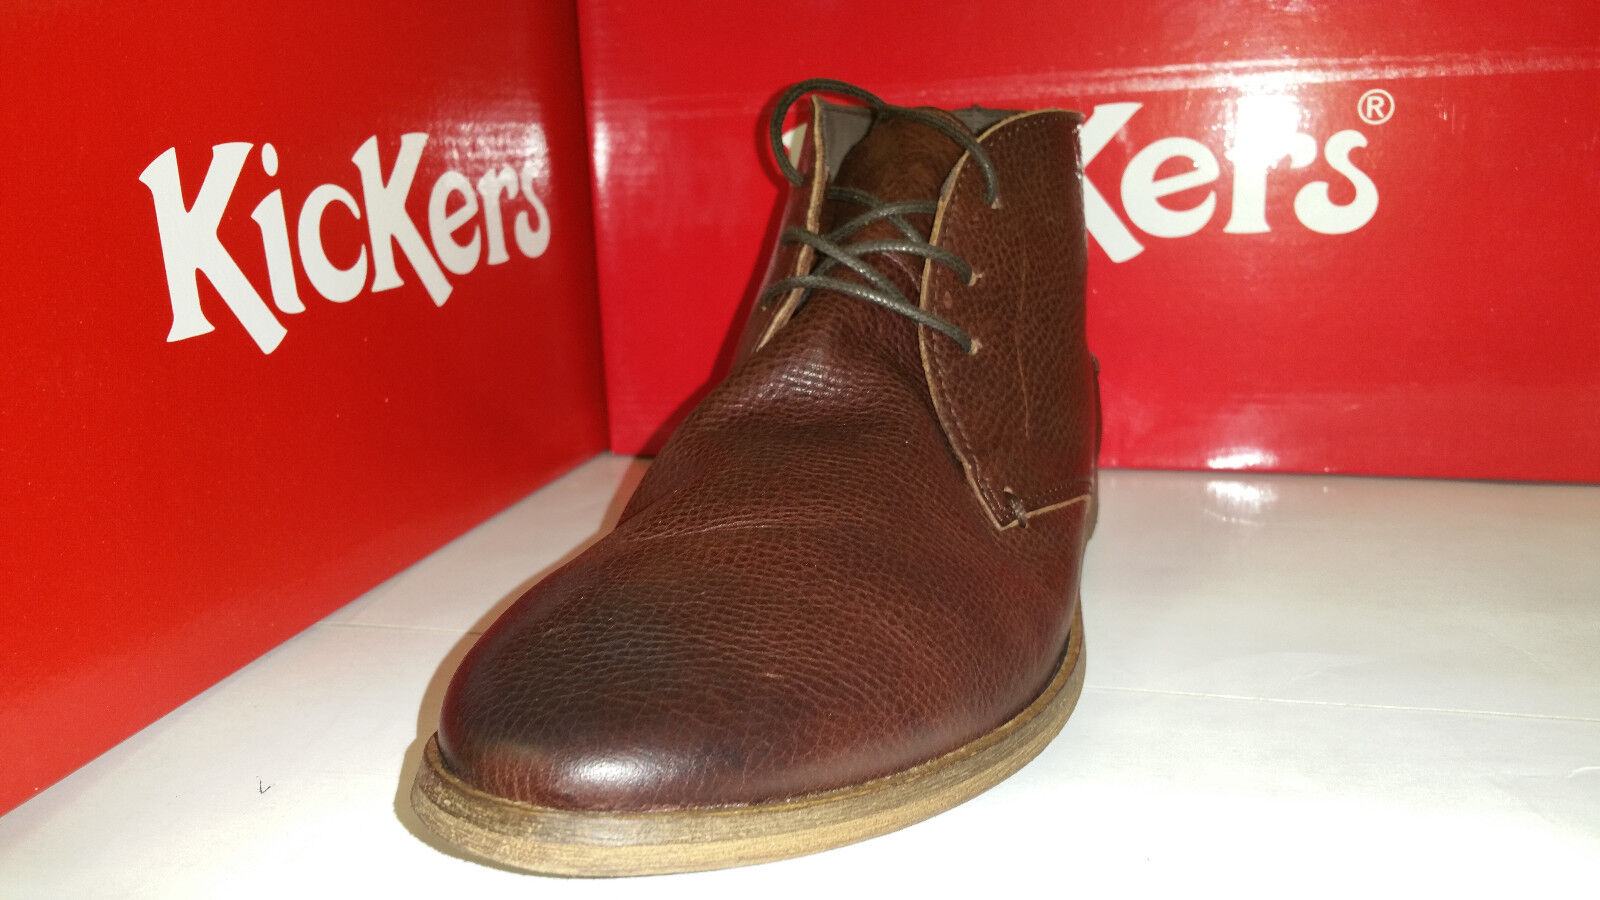 Kickers River 2 Laced Laced Laced Ankel Stivali Brown Pelle Uomo Shoes size US 7.5-12 725614